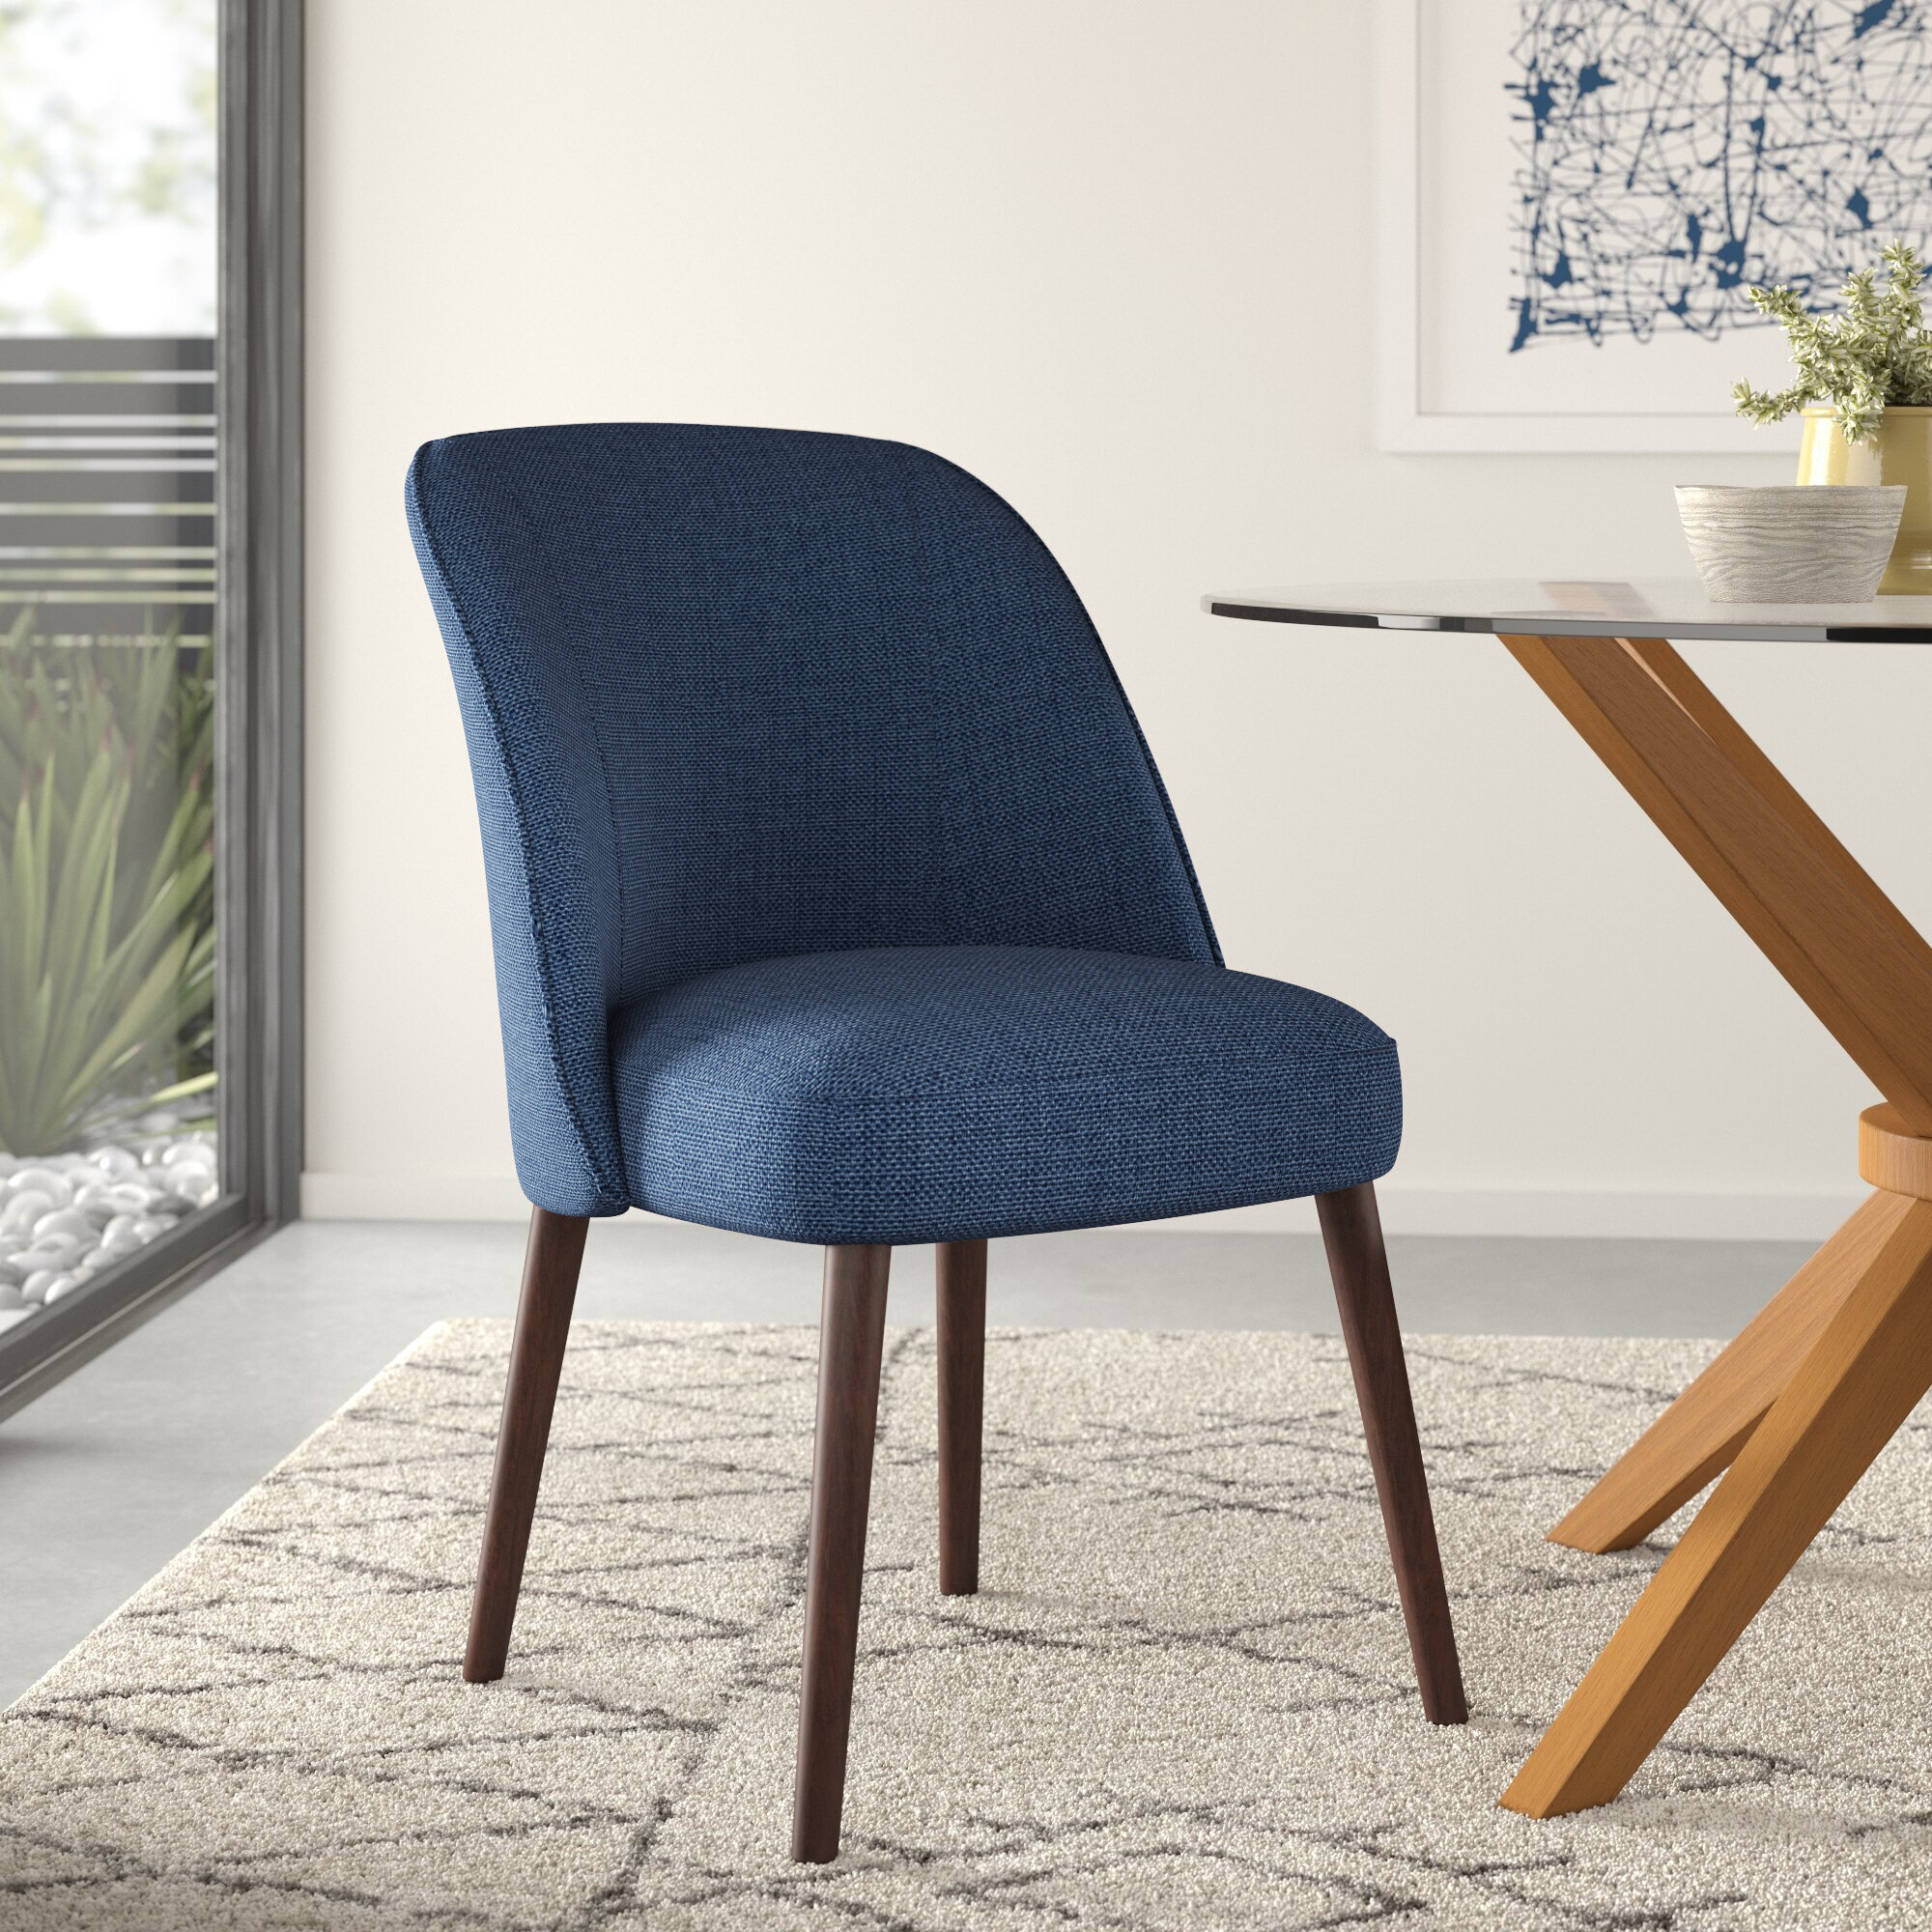 Fabric Kitchen & Dining Chairs You'Ll Love In 2021 | Wayfair Throughout Madison Avenue Tufted Cotton Upholstered Dining Chairs (Set Of 2) (View 6 of 15)